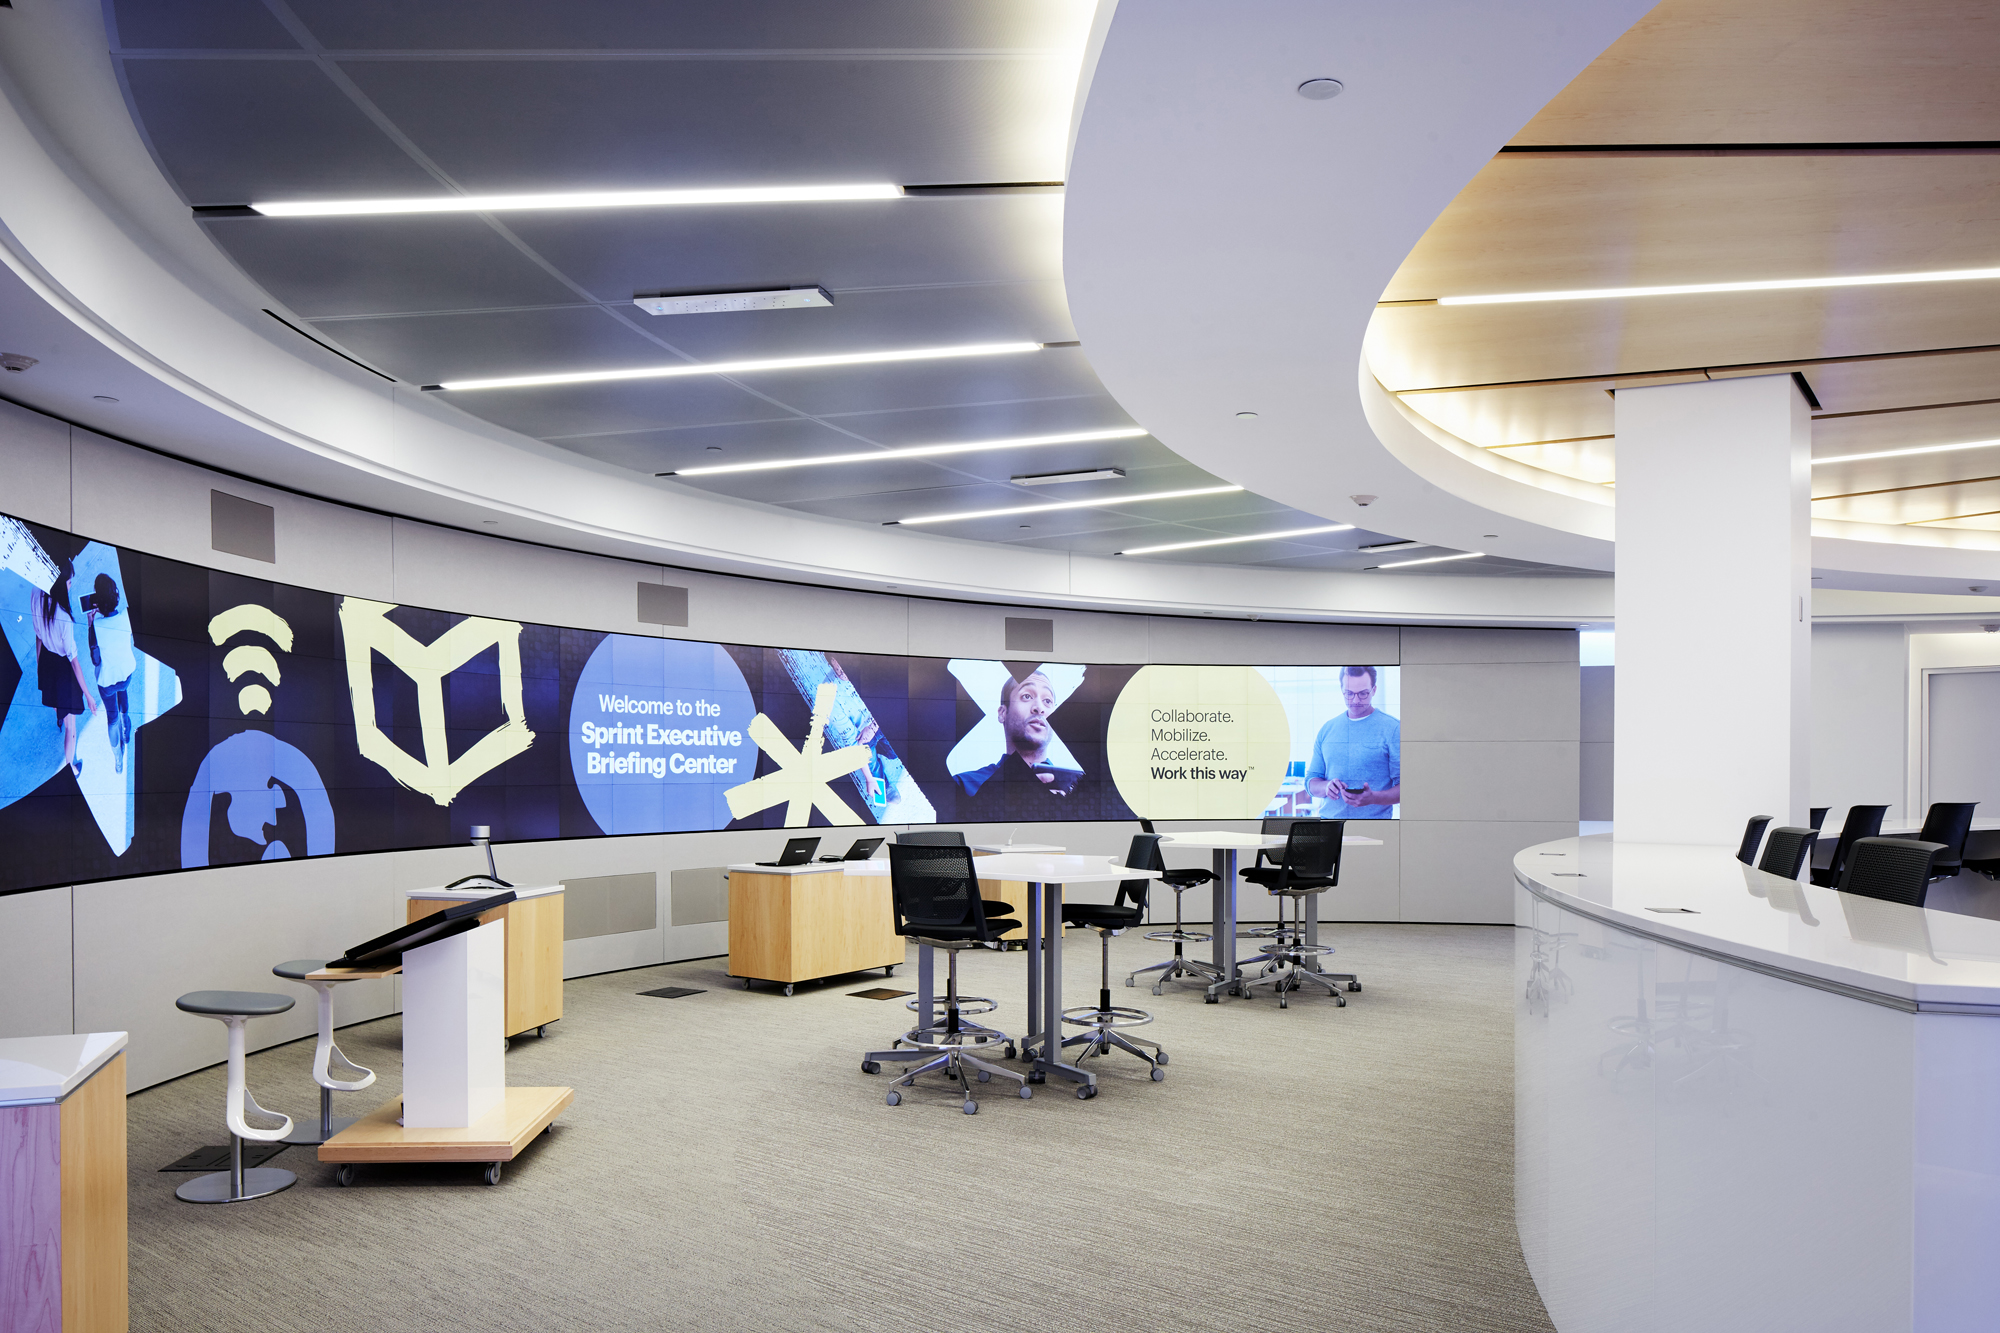 Sprint Executive Briefing Center Architect Magazine